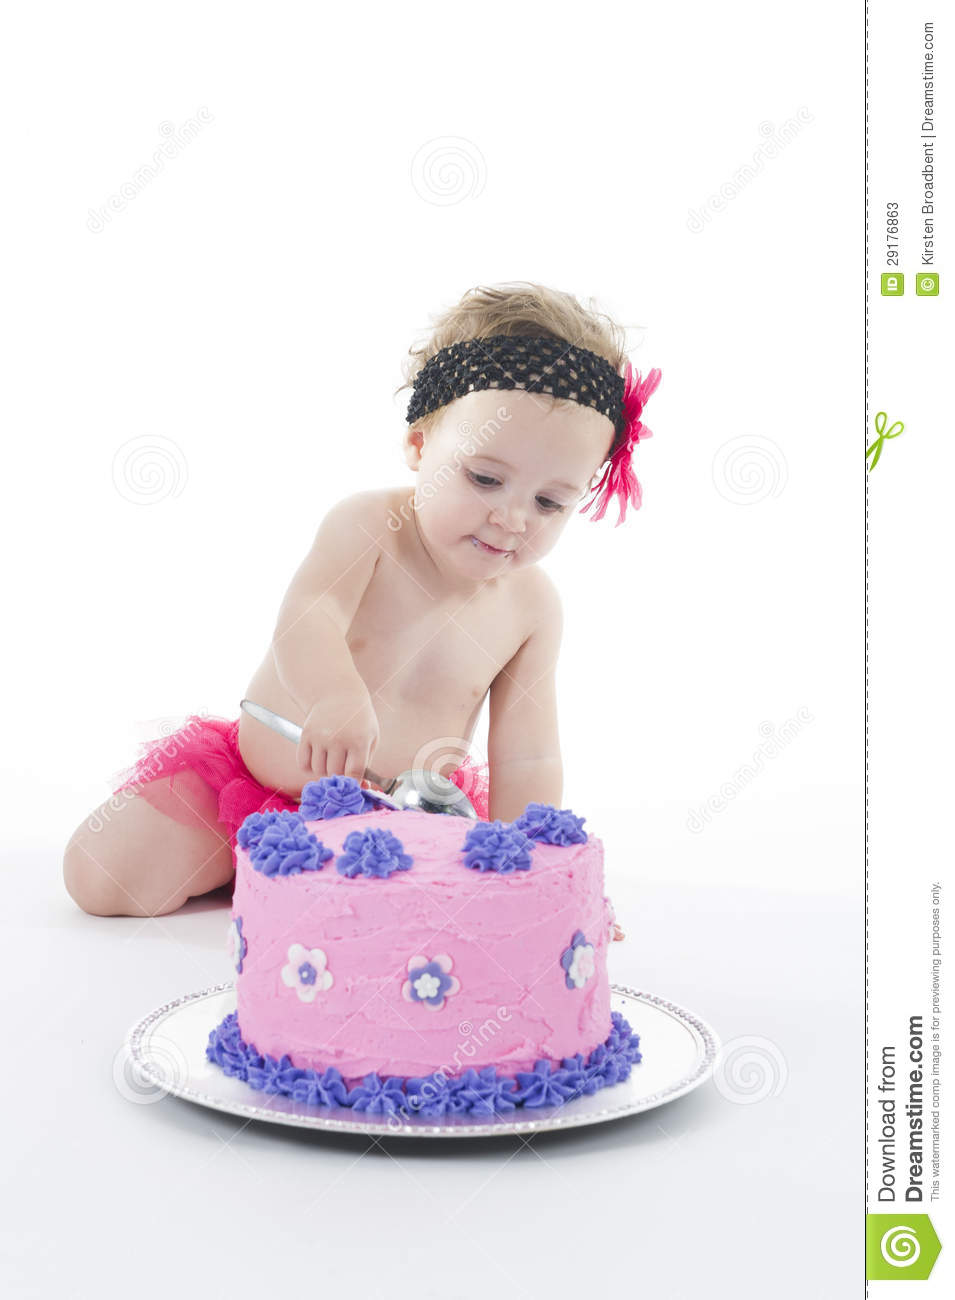 Smashed Cake Clipart : Cake Smash Shoot: Baby Girl And Big Cake! Stock Photos ...